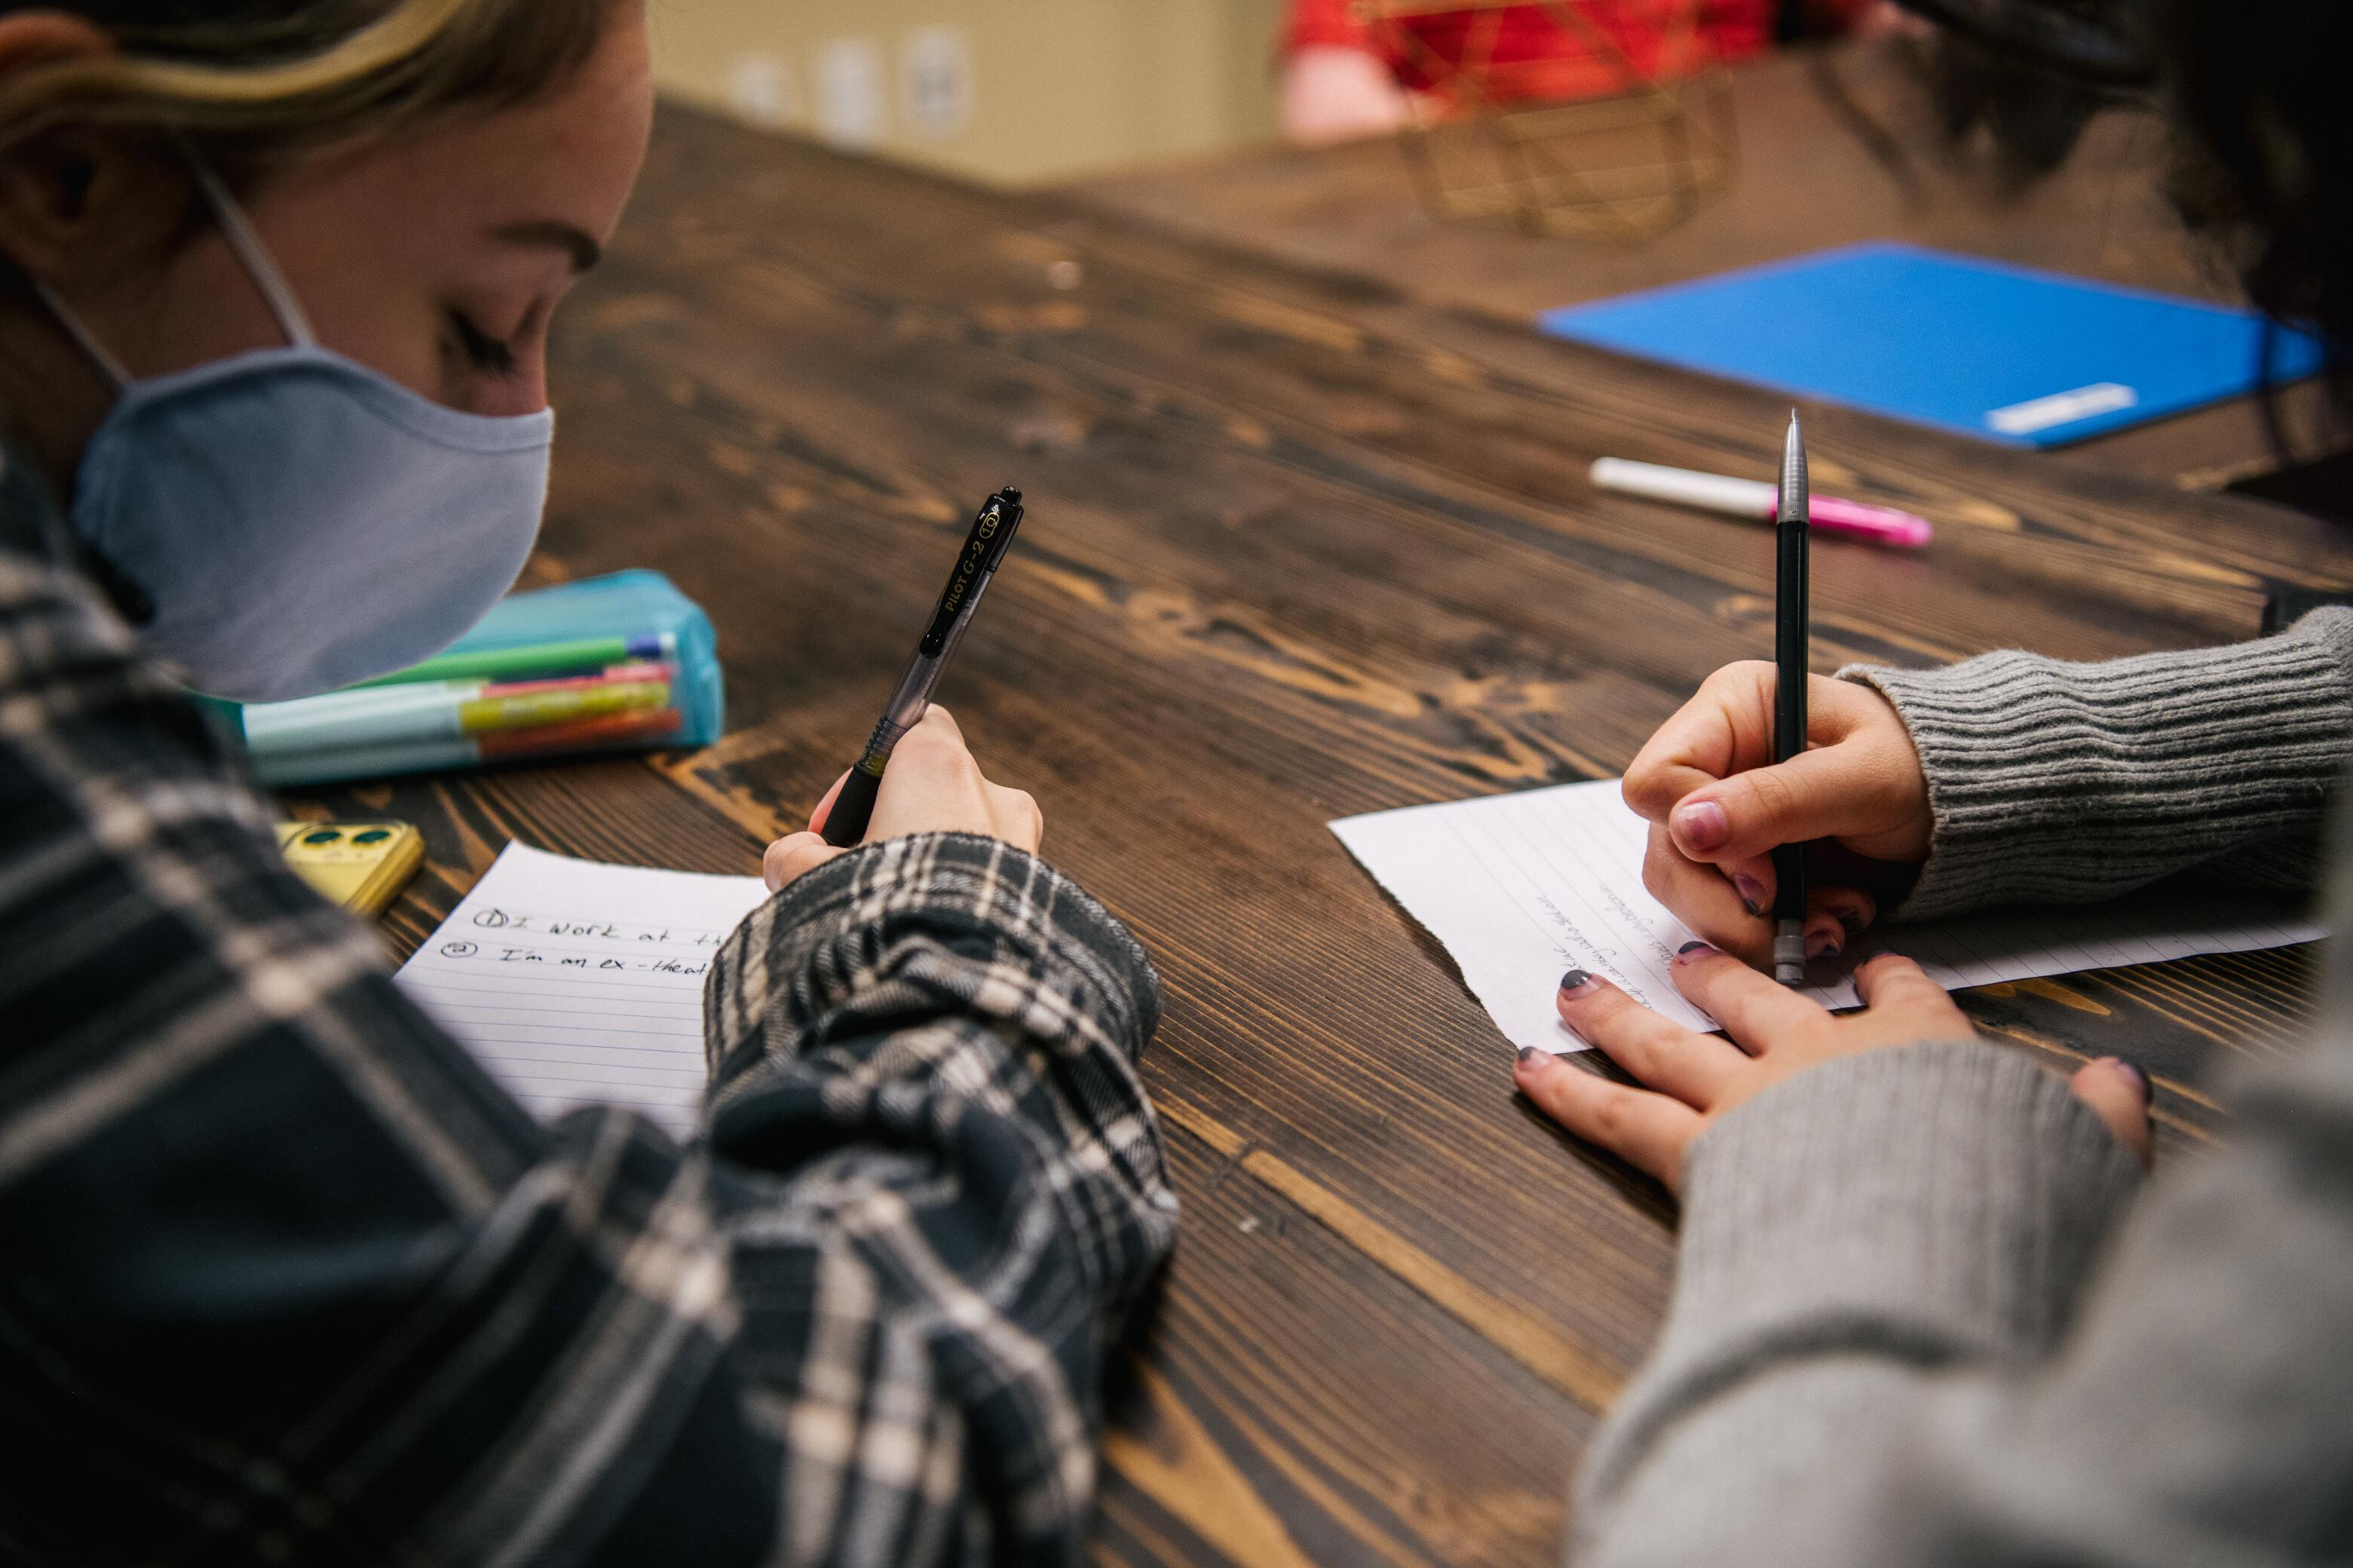 States sound alarm over Covid-19 outbreaks among school kids